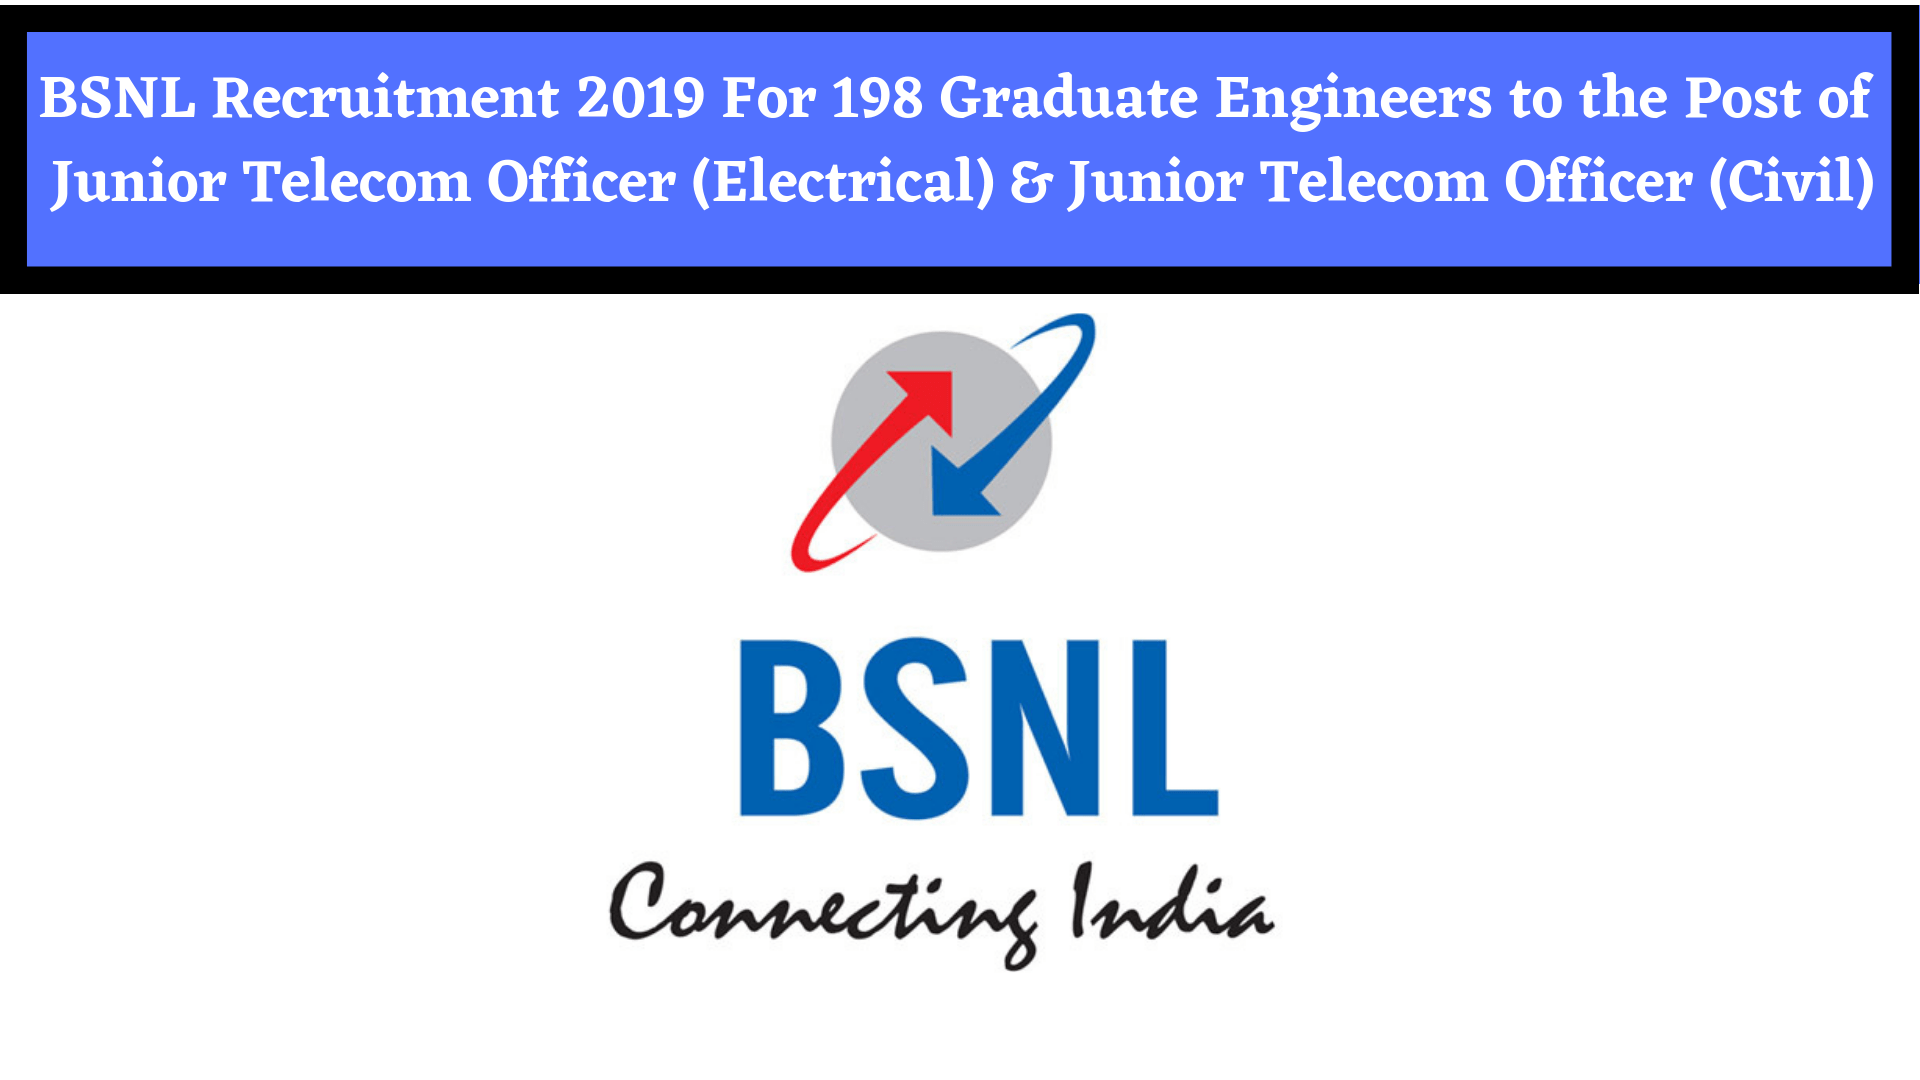 BSNL Recruitment 2019